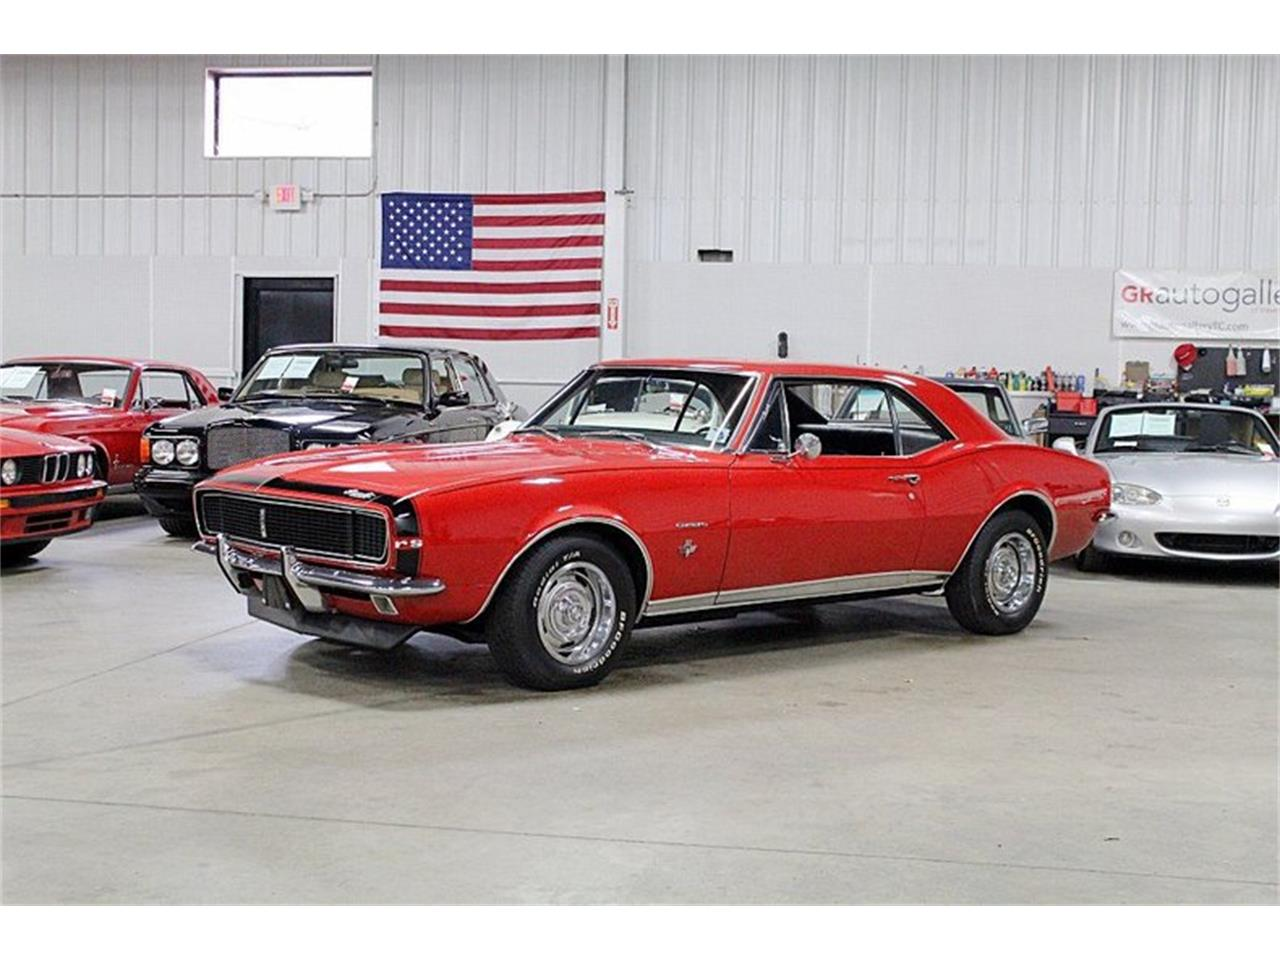 for sale 1967 chevrolet camaro in kentwood, michigan cars - grand rapids, mi at geebo